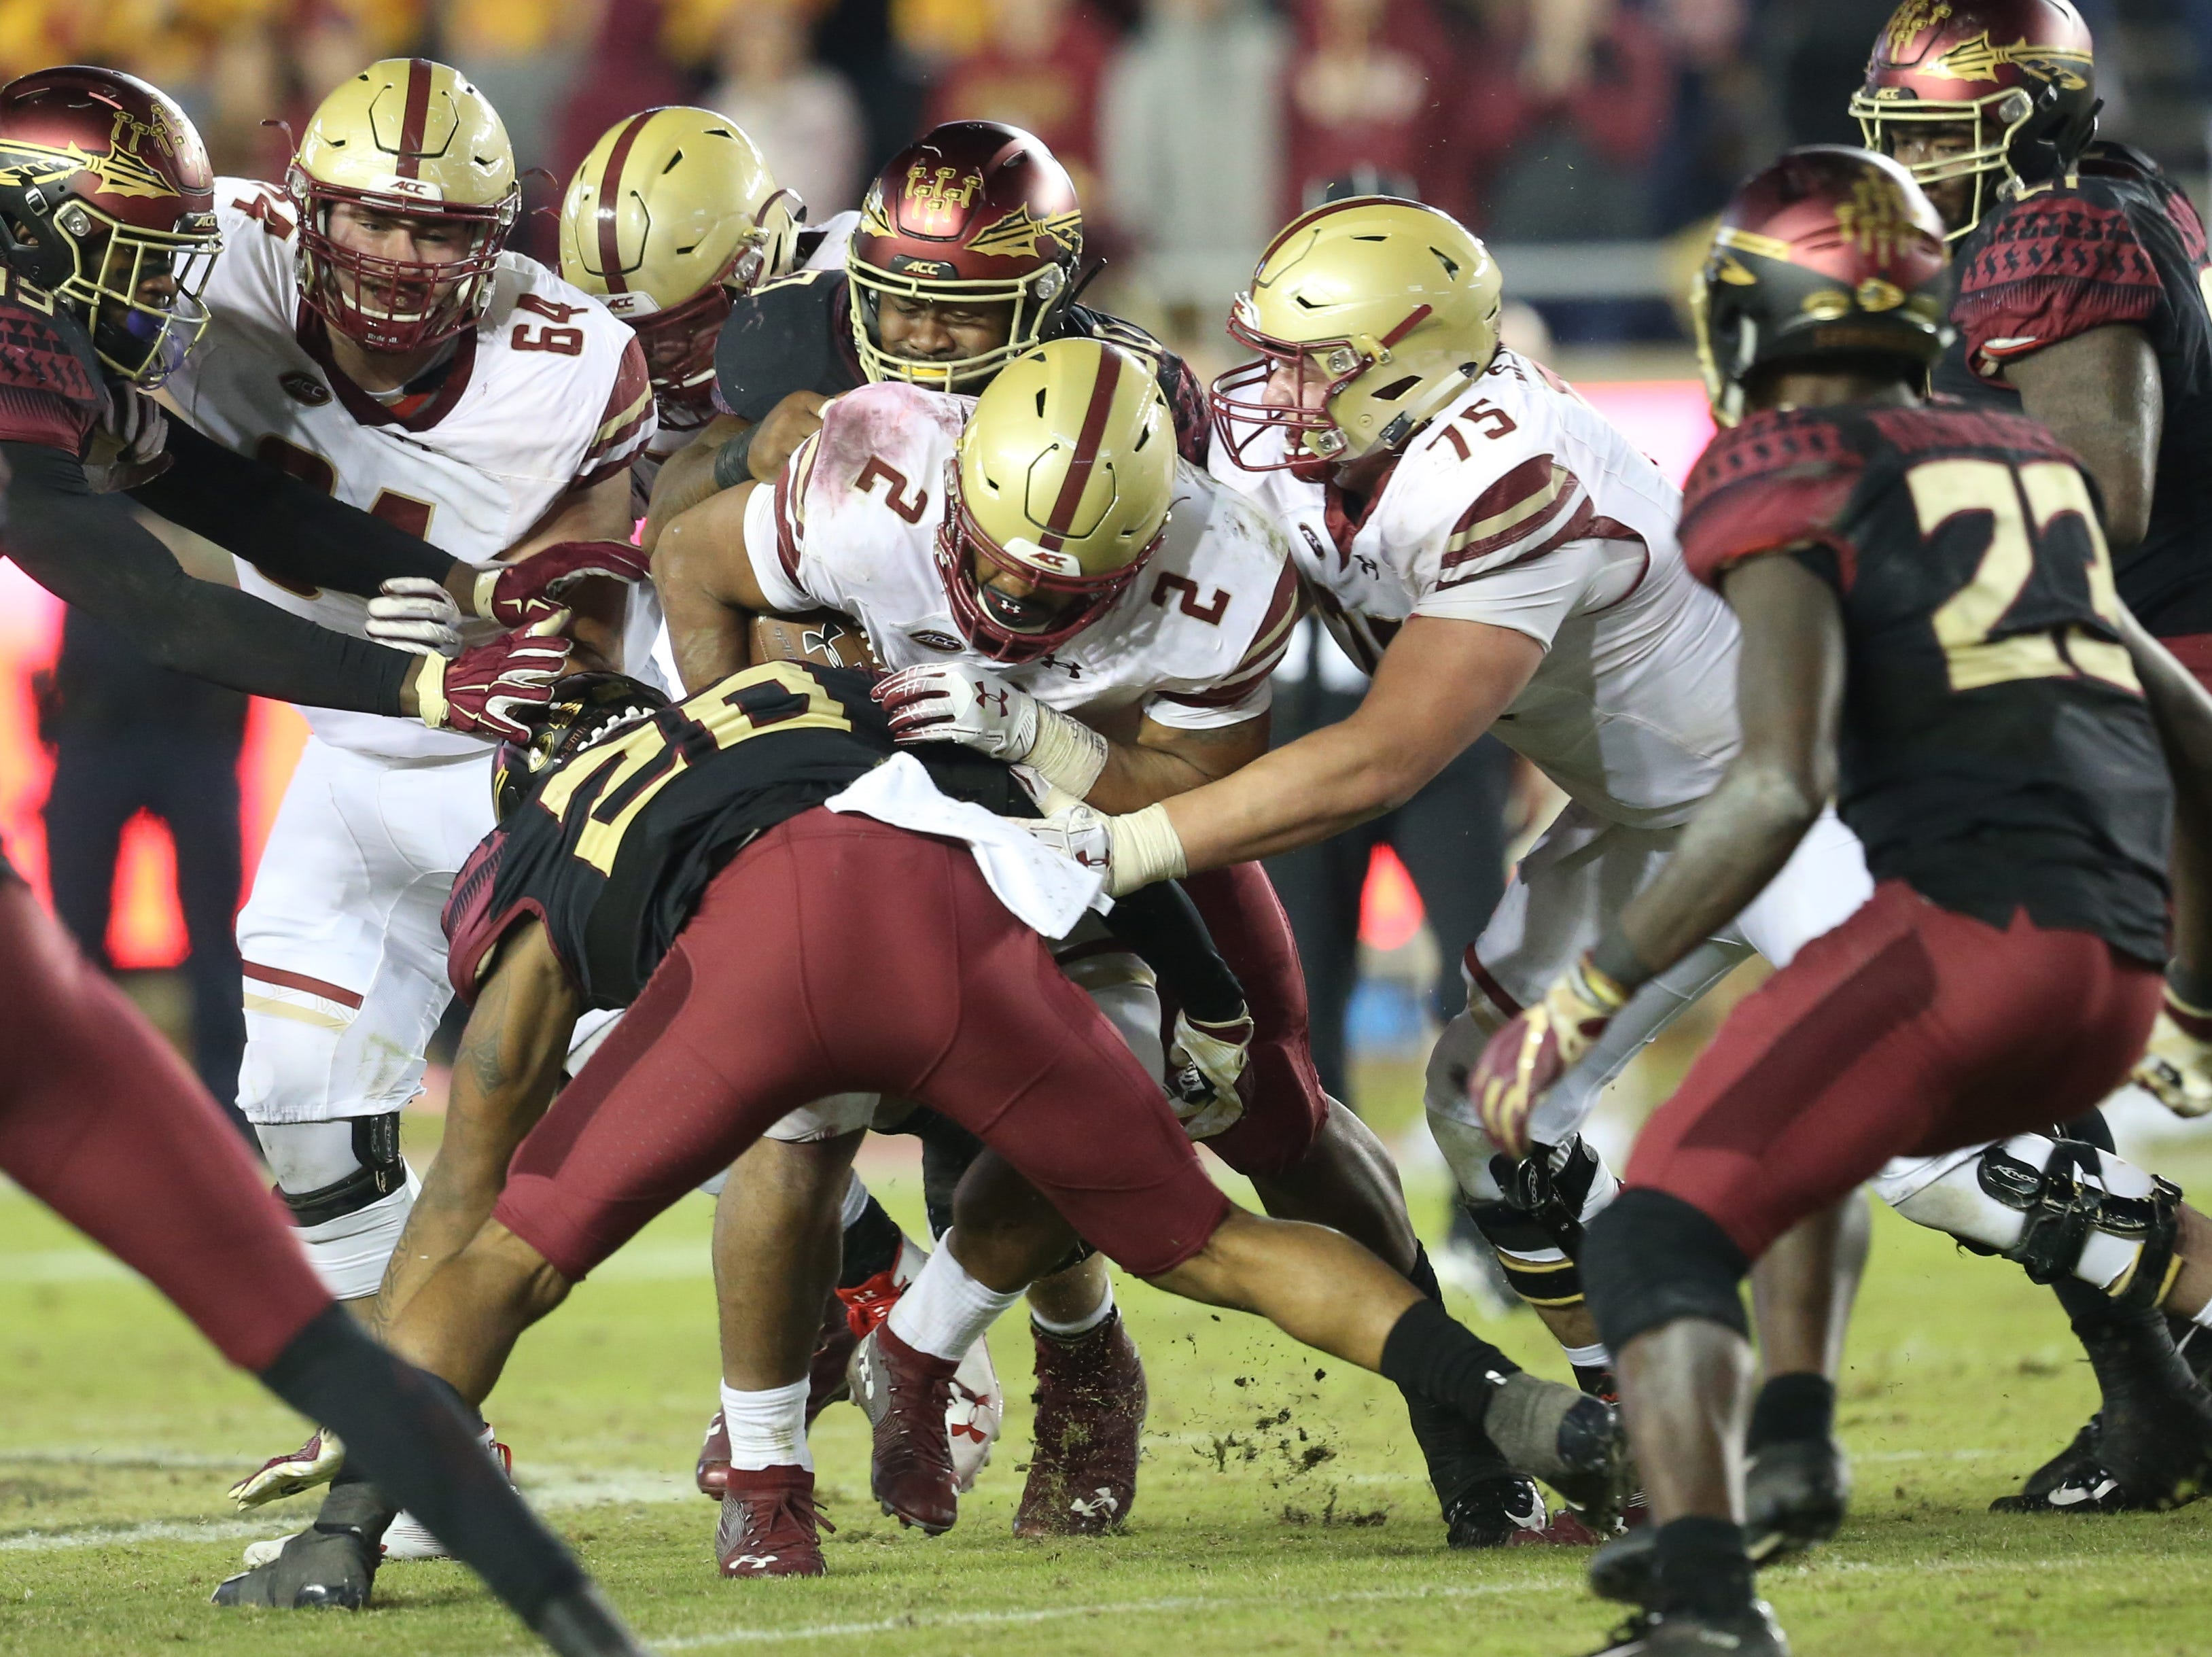 Florida State Seminoles defensive back Jaiden Woodbey (20) latches onto Boston College Eagles running back AJ Dillon (2) as the Florida State Seminoles face off against the Boston College Eagles at Doak S. Campbell Stadium, Saturday, Nov. 17, 2018.